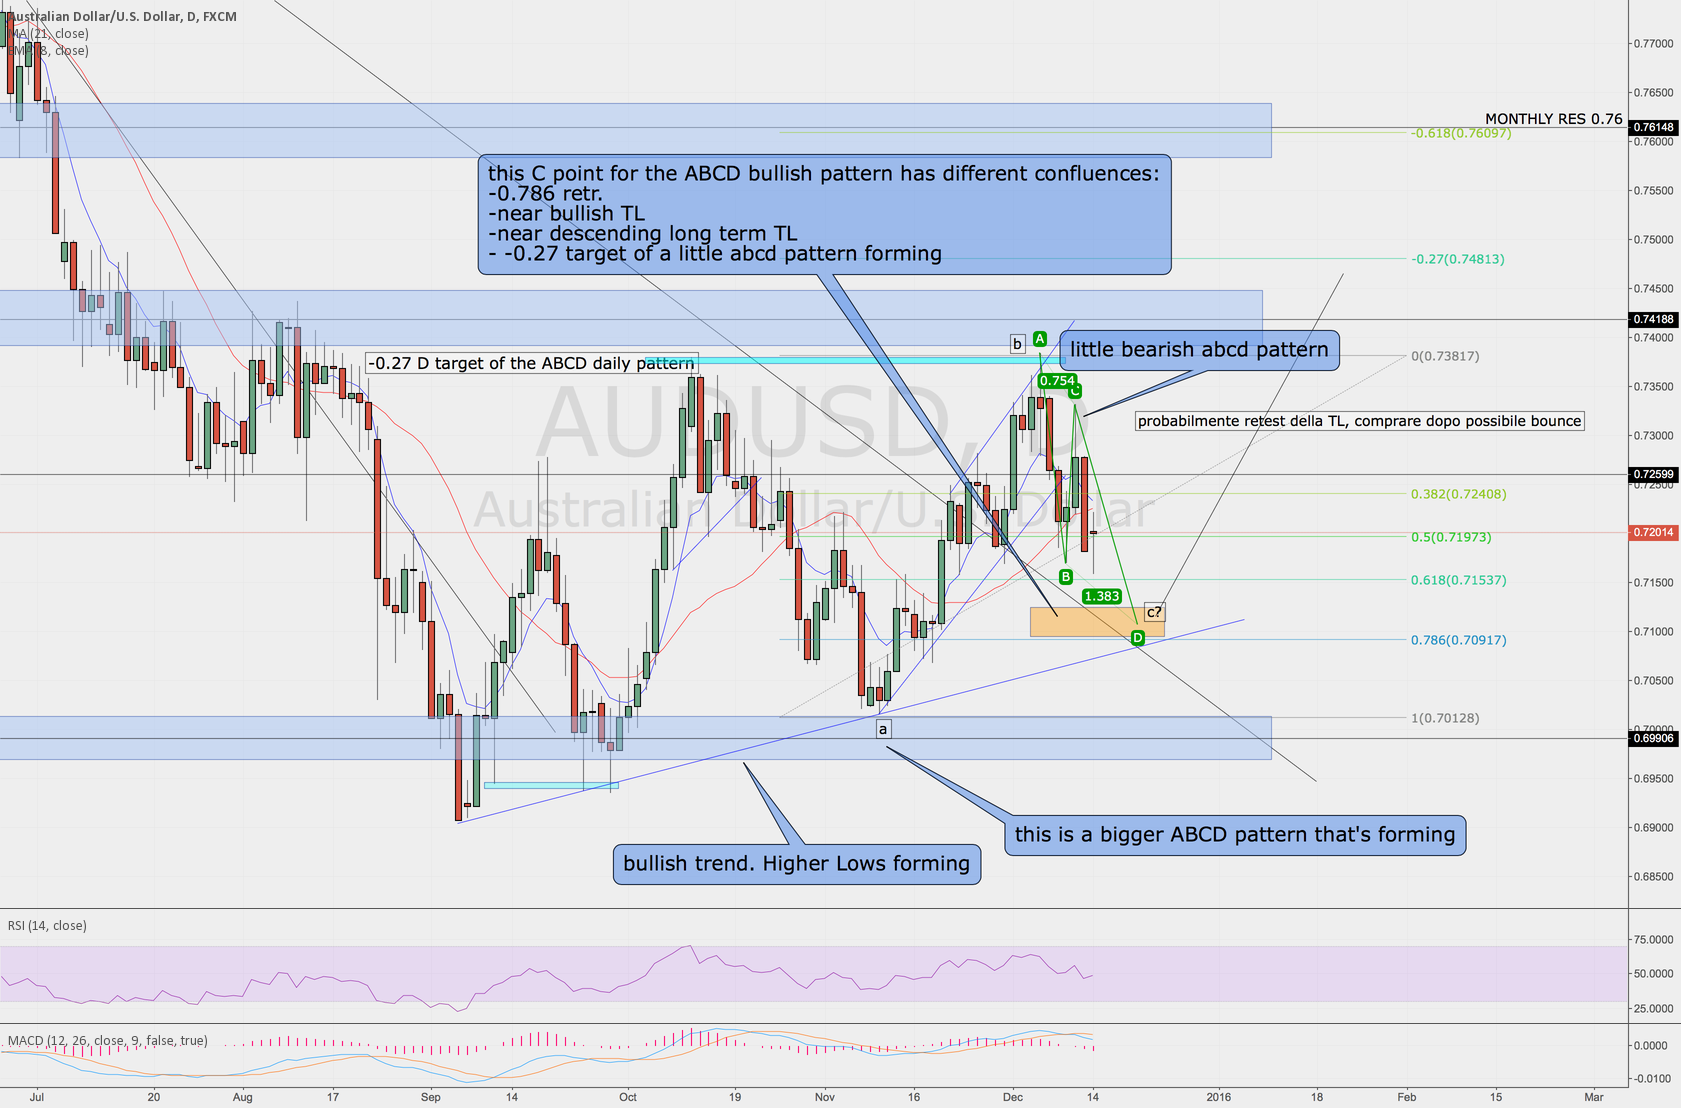 Trade with a good risk/reward in the next few days